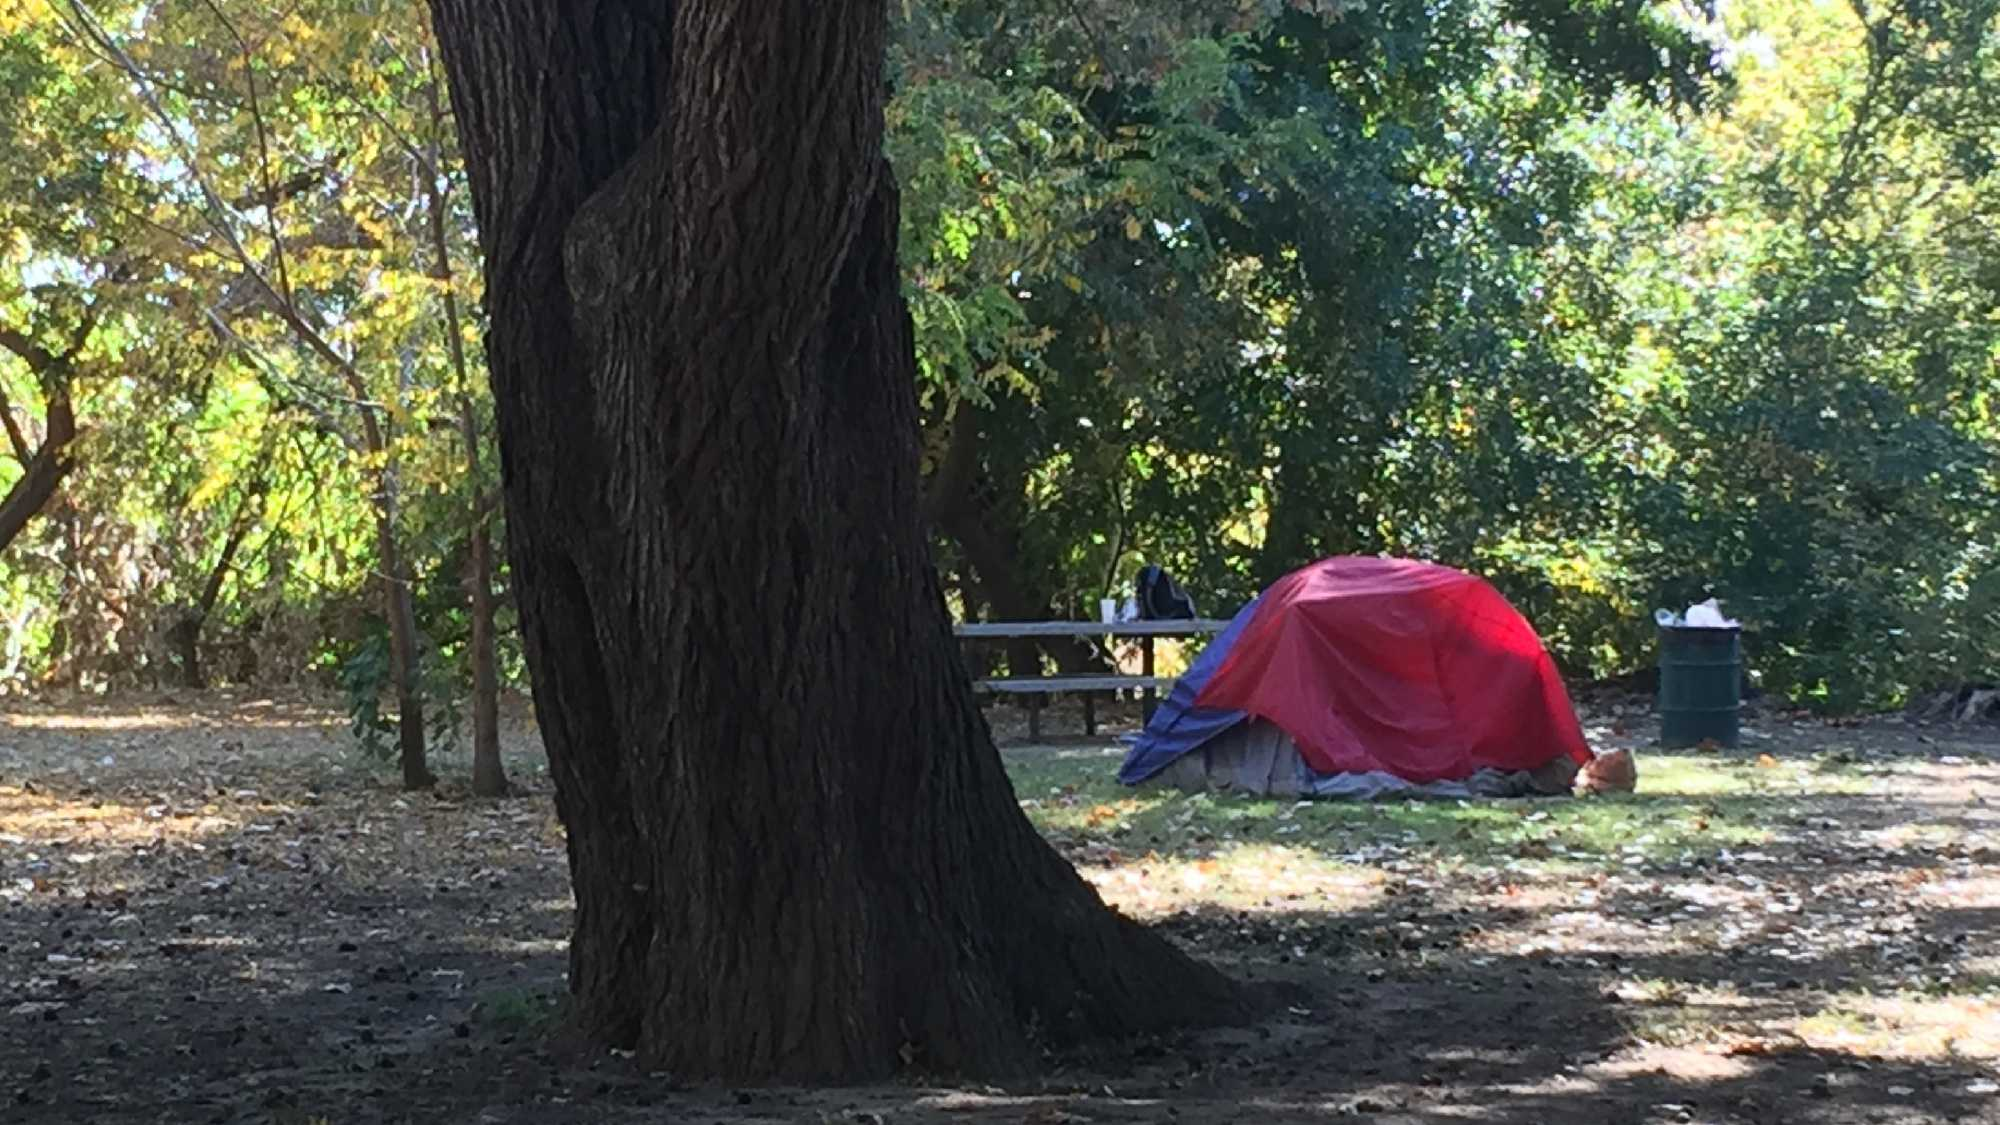 Sacramento's homeless camp in Discovery Park because they are being pushed out of downtown, homeless advocates said. The city and police said there has been no shift in policy.